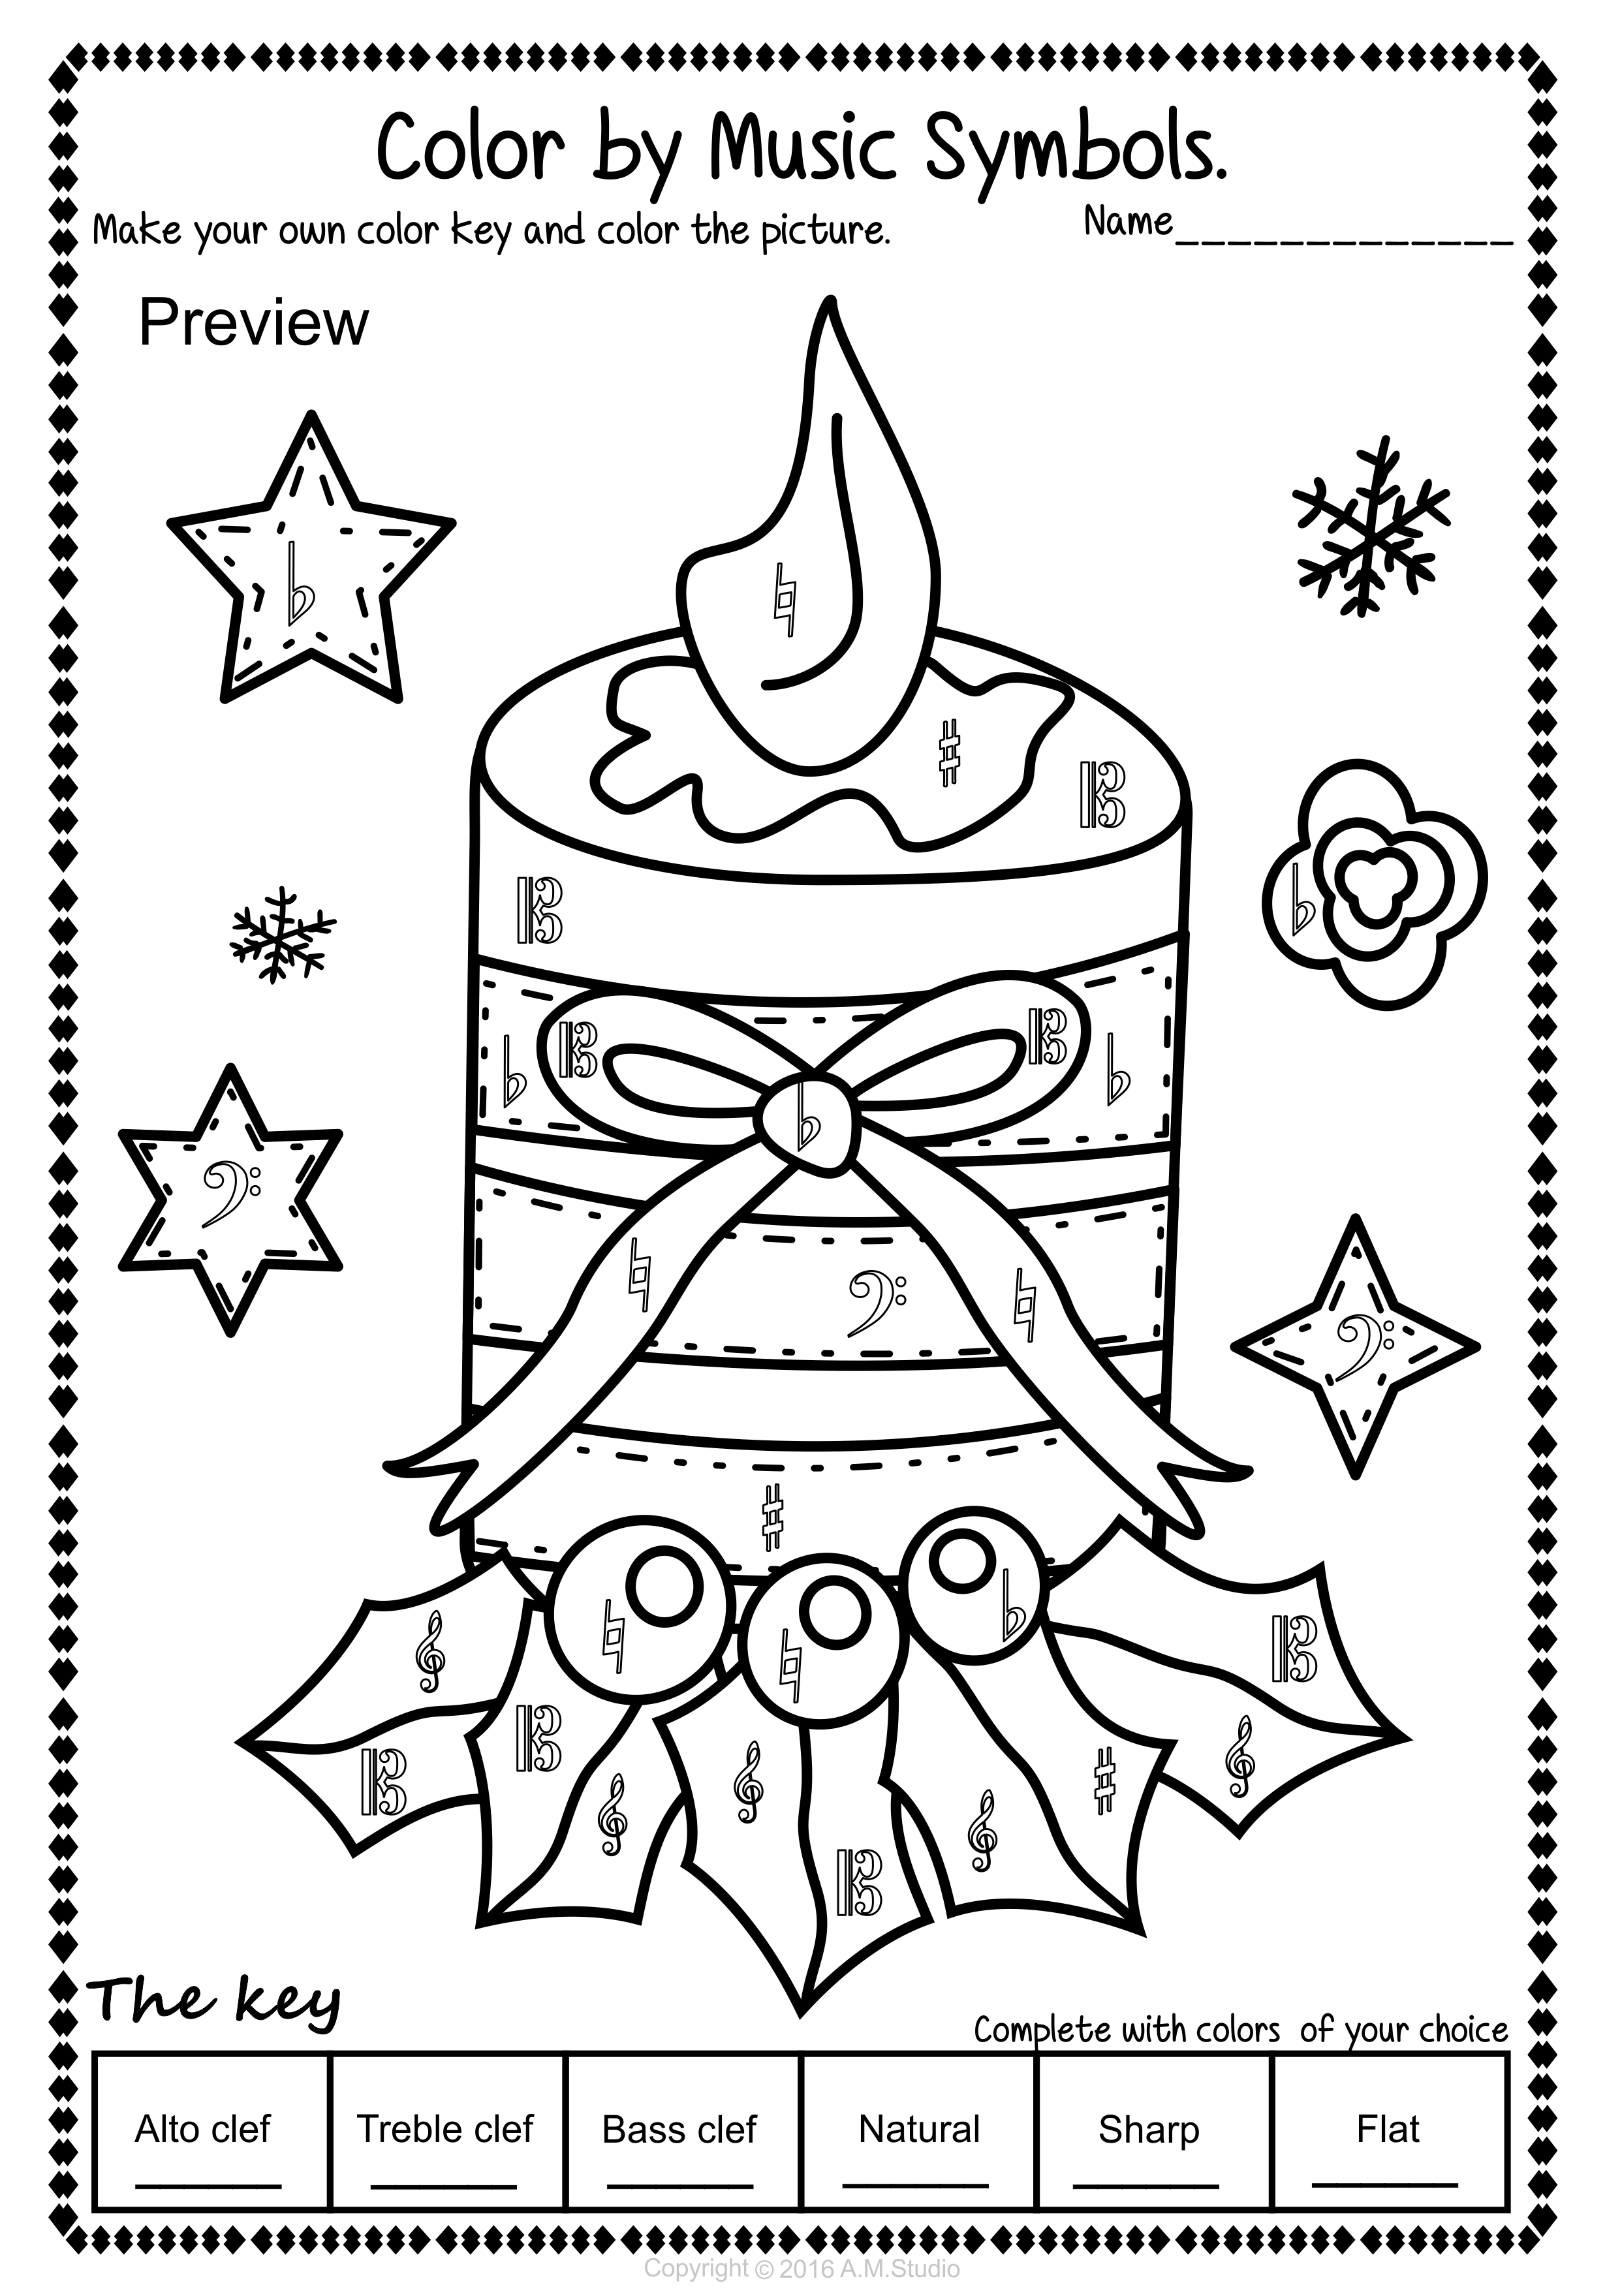 Simple And Fun Christmas Music Coloring Activity For Kids This Set Contains 14 Christmas Music Coloring Christmas Music Worksheets Christmas Music Activities